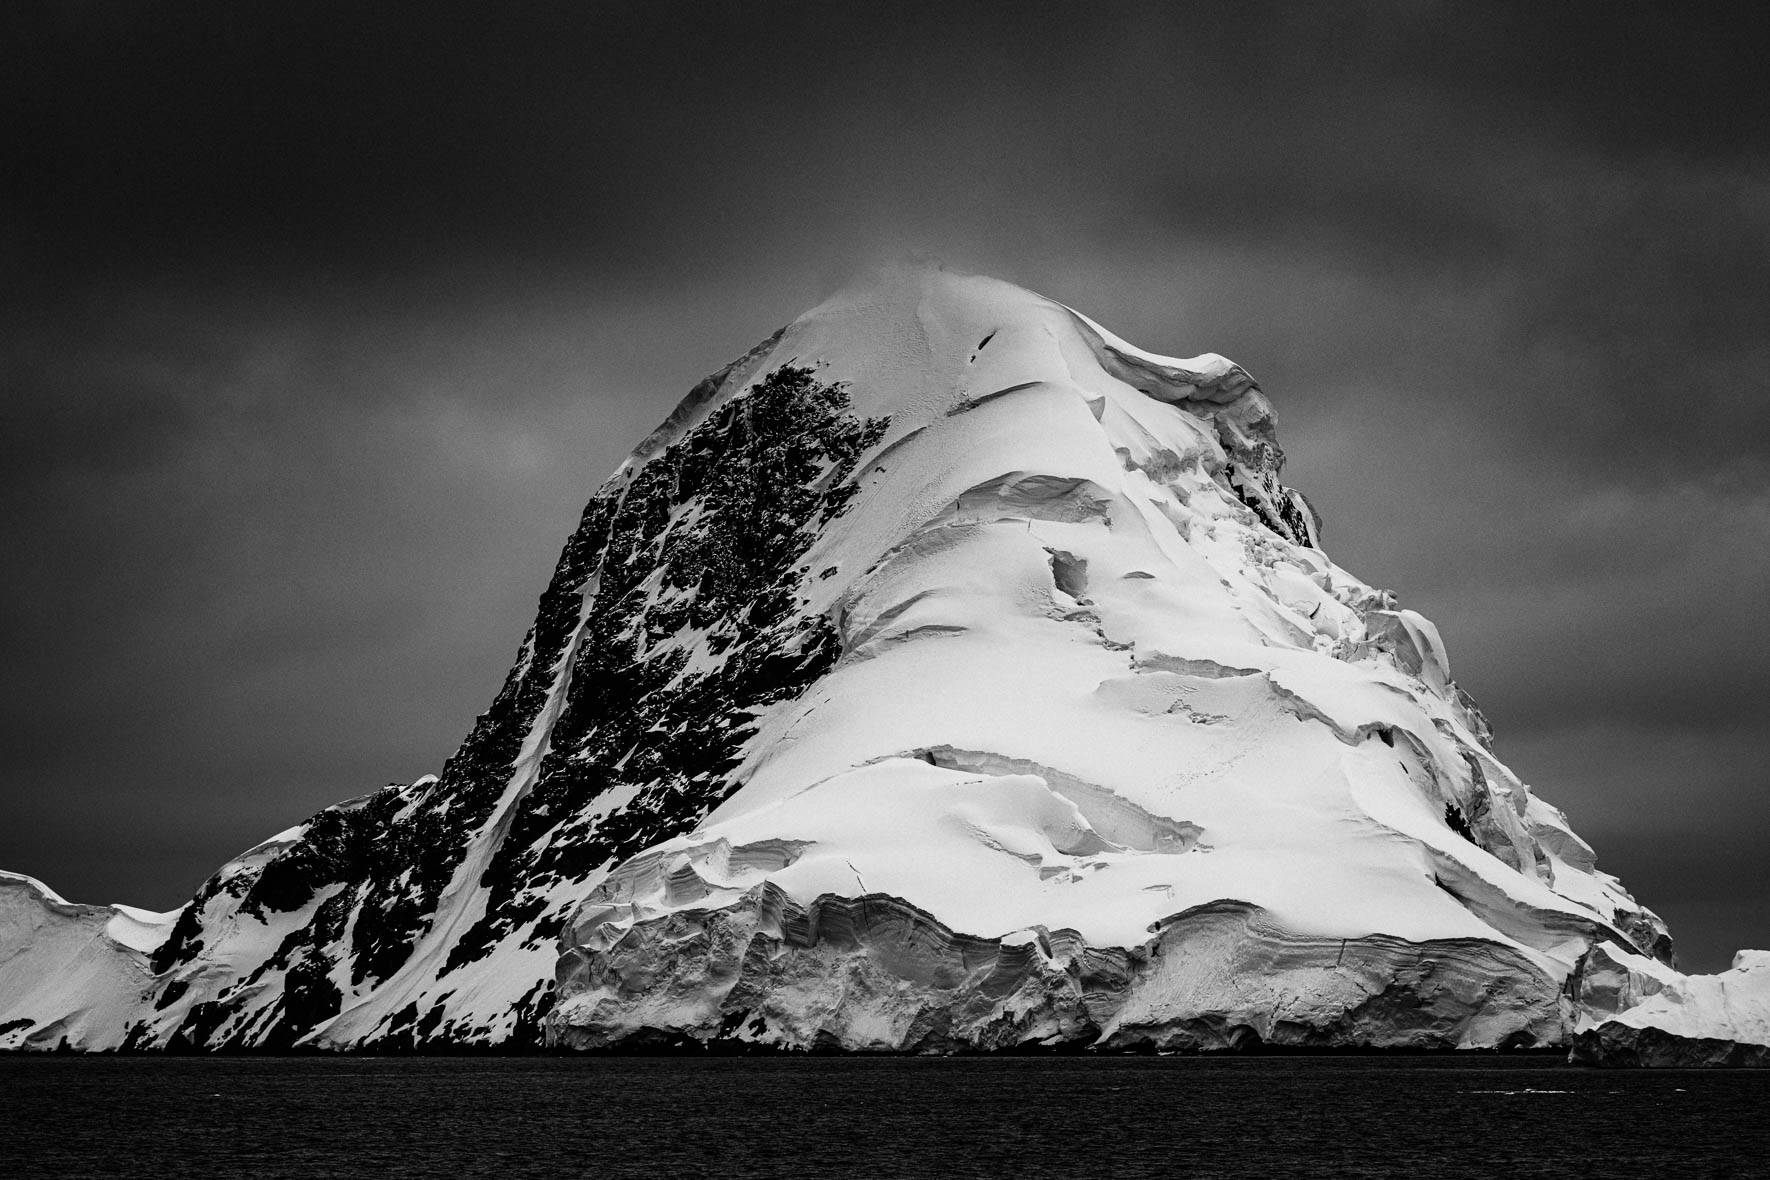 Black and white photo of glacier and mountain in Antarctica